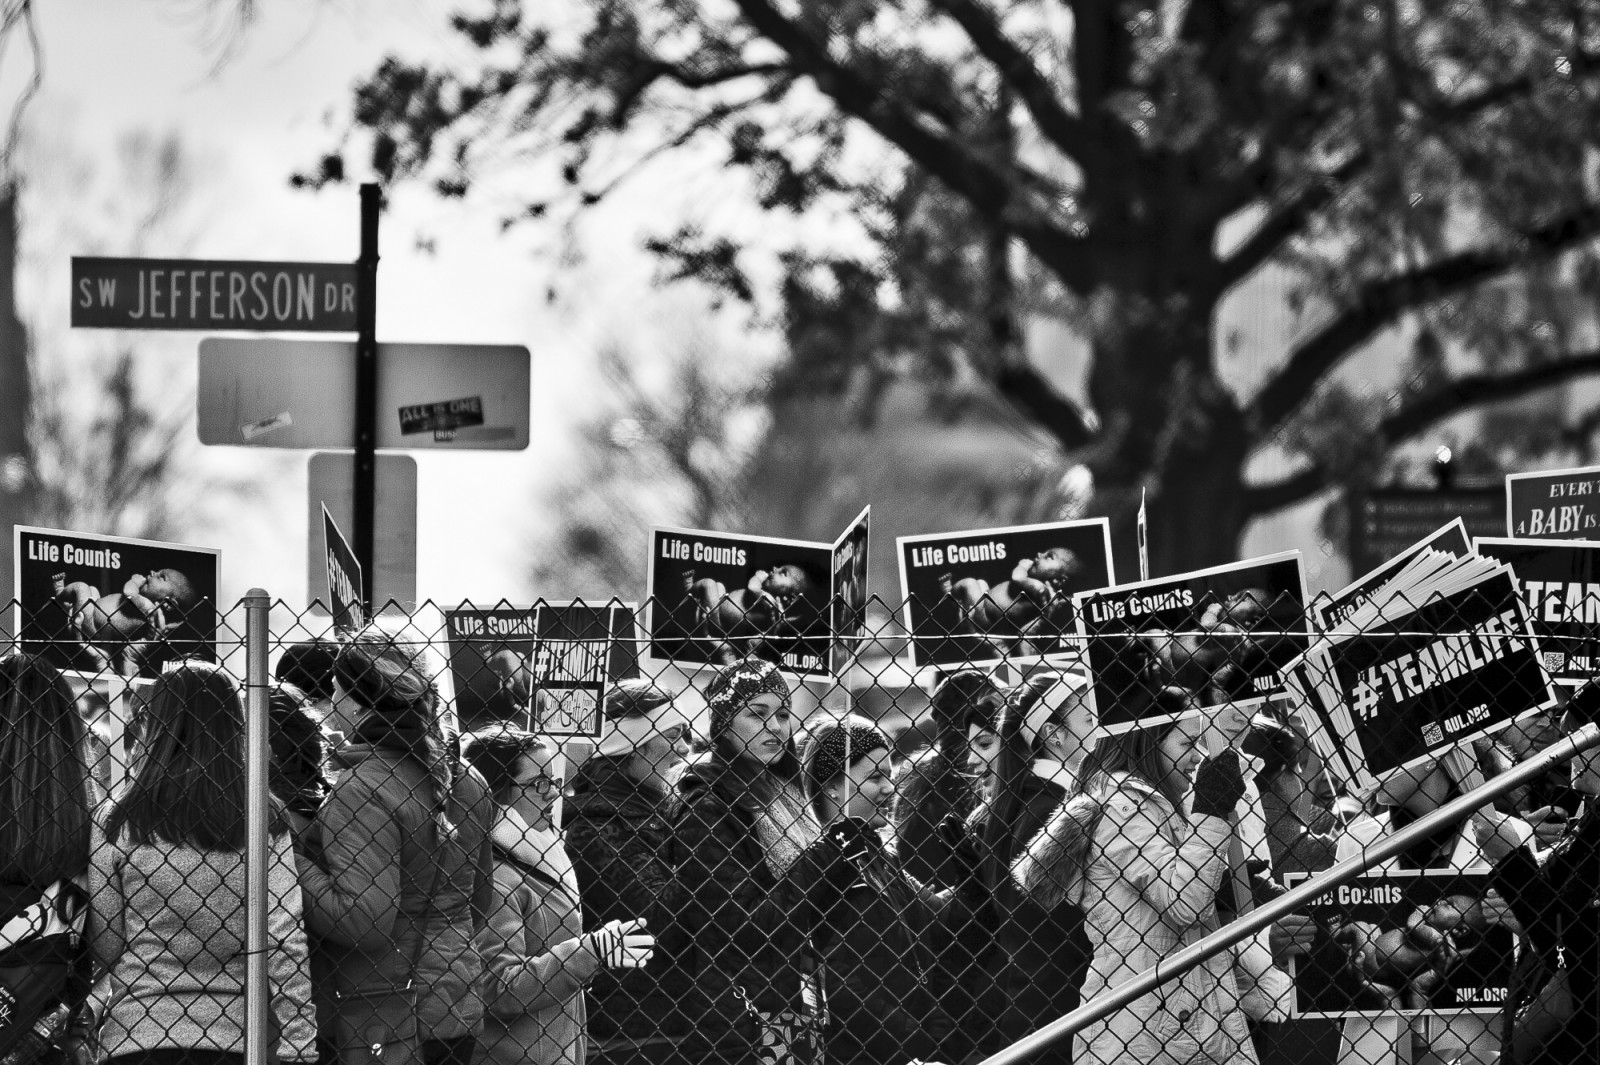 Anti-abortion activists arrive to take part in the 42nd March for Life in Washington, DC on January 22, 2015. Activists from across the nation participated in the annual pro-life rally protesting abortion and the 1973 Roe v. Wade Supreme Court decision legalizing abortion. UPI/Pete Marovich